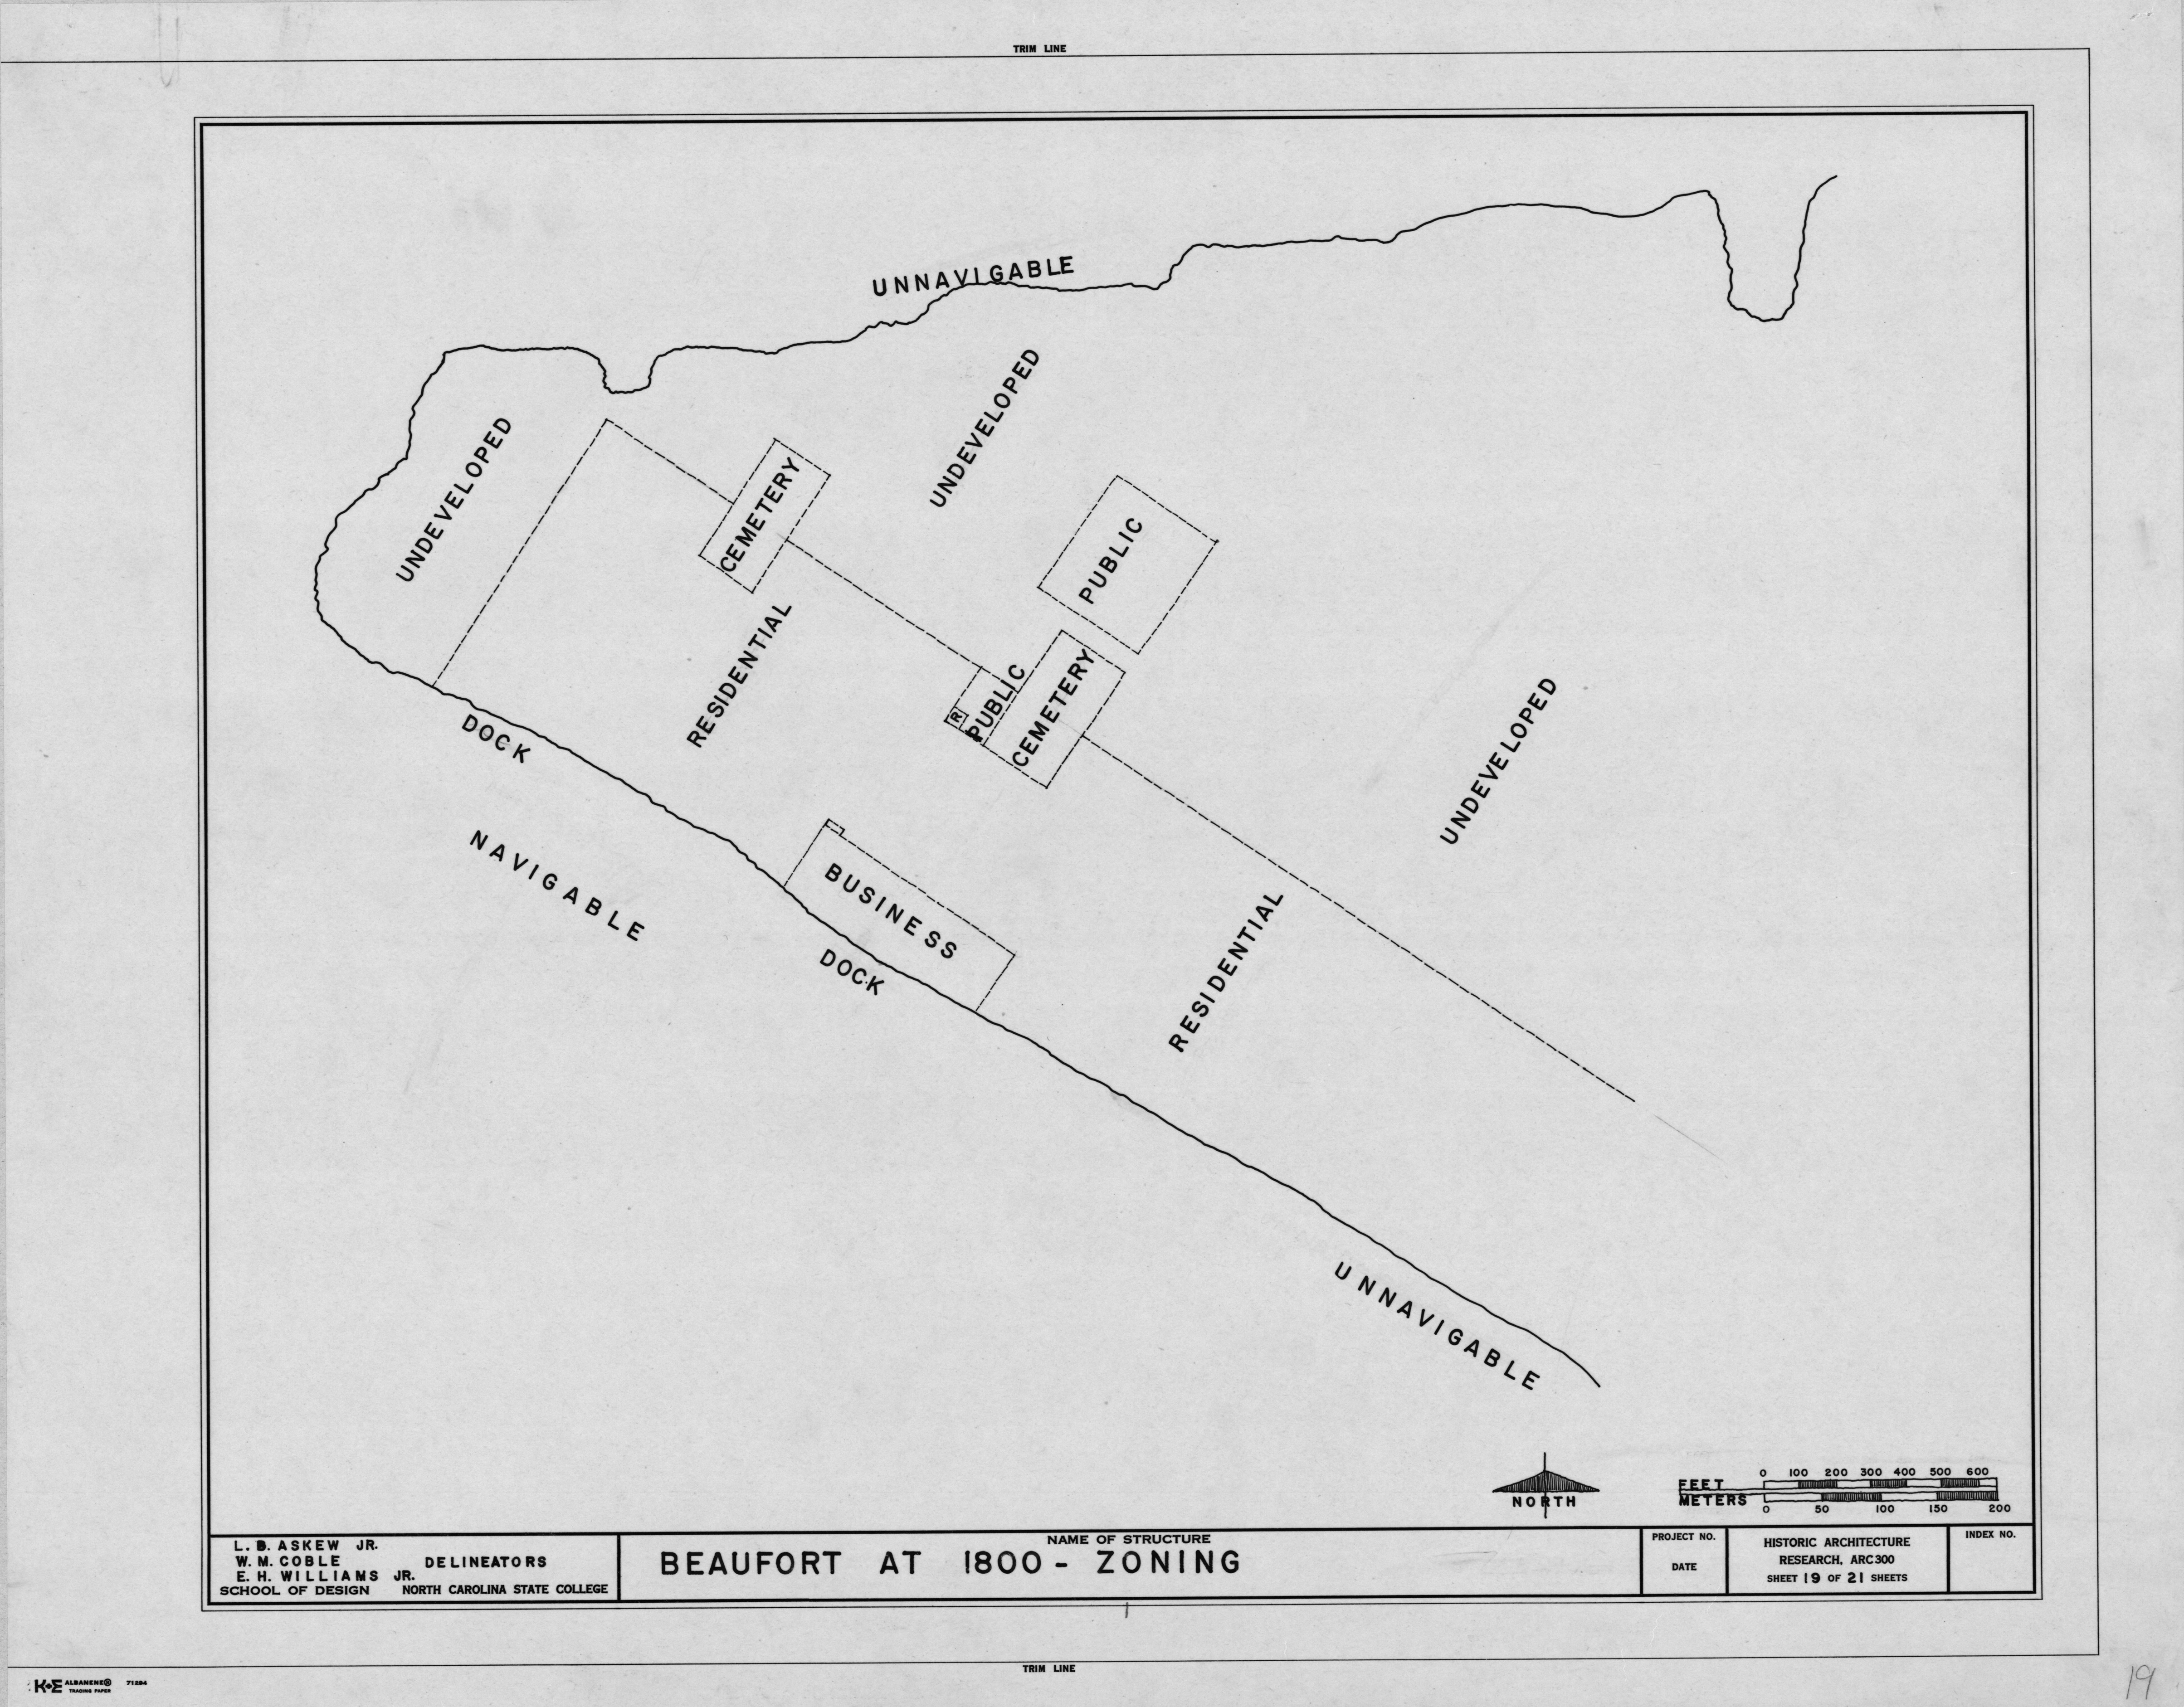 1800 zoning of Beaufort, historical background of Beaufort, Beaufort, North Carolina